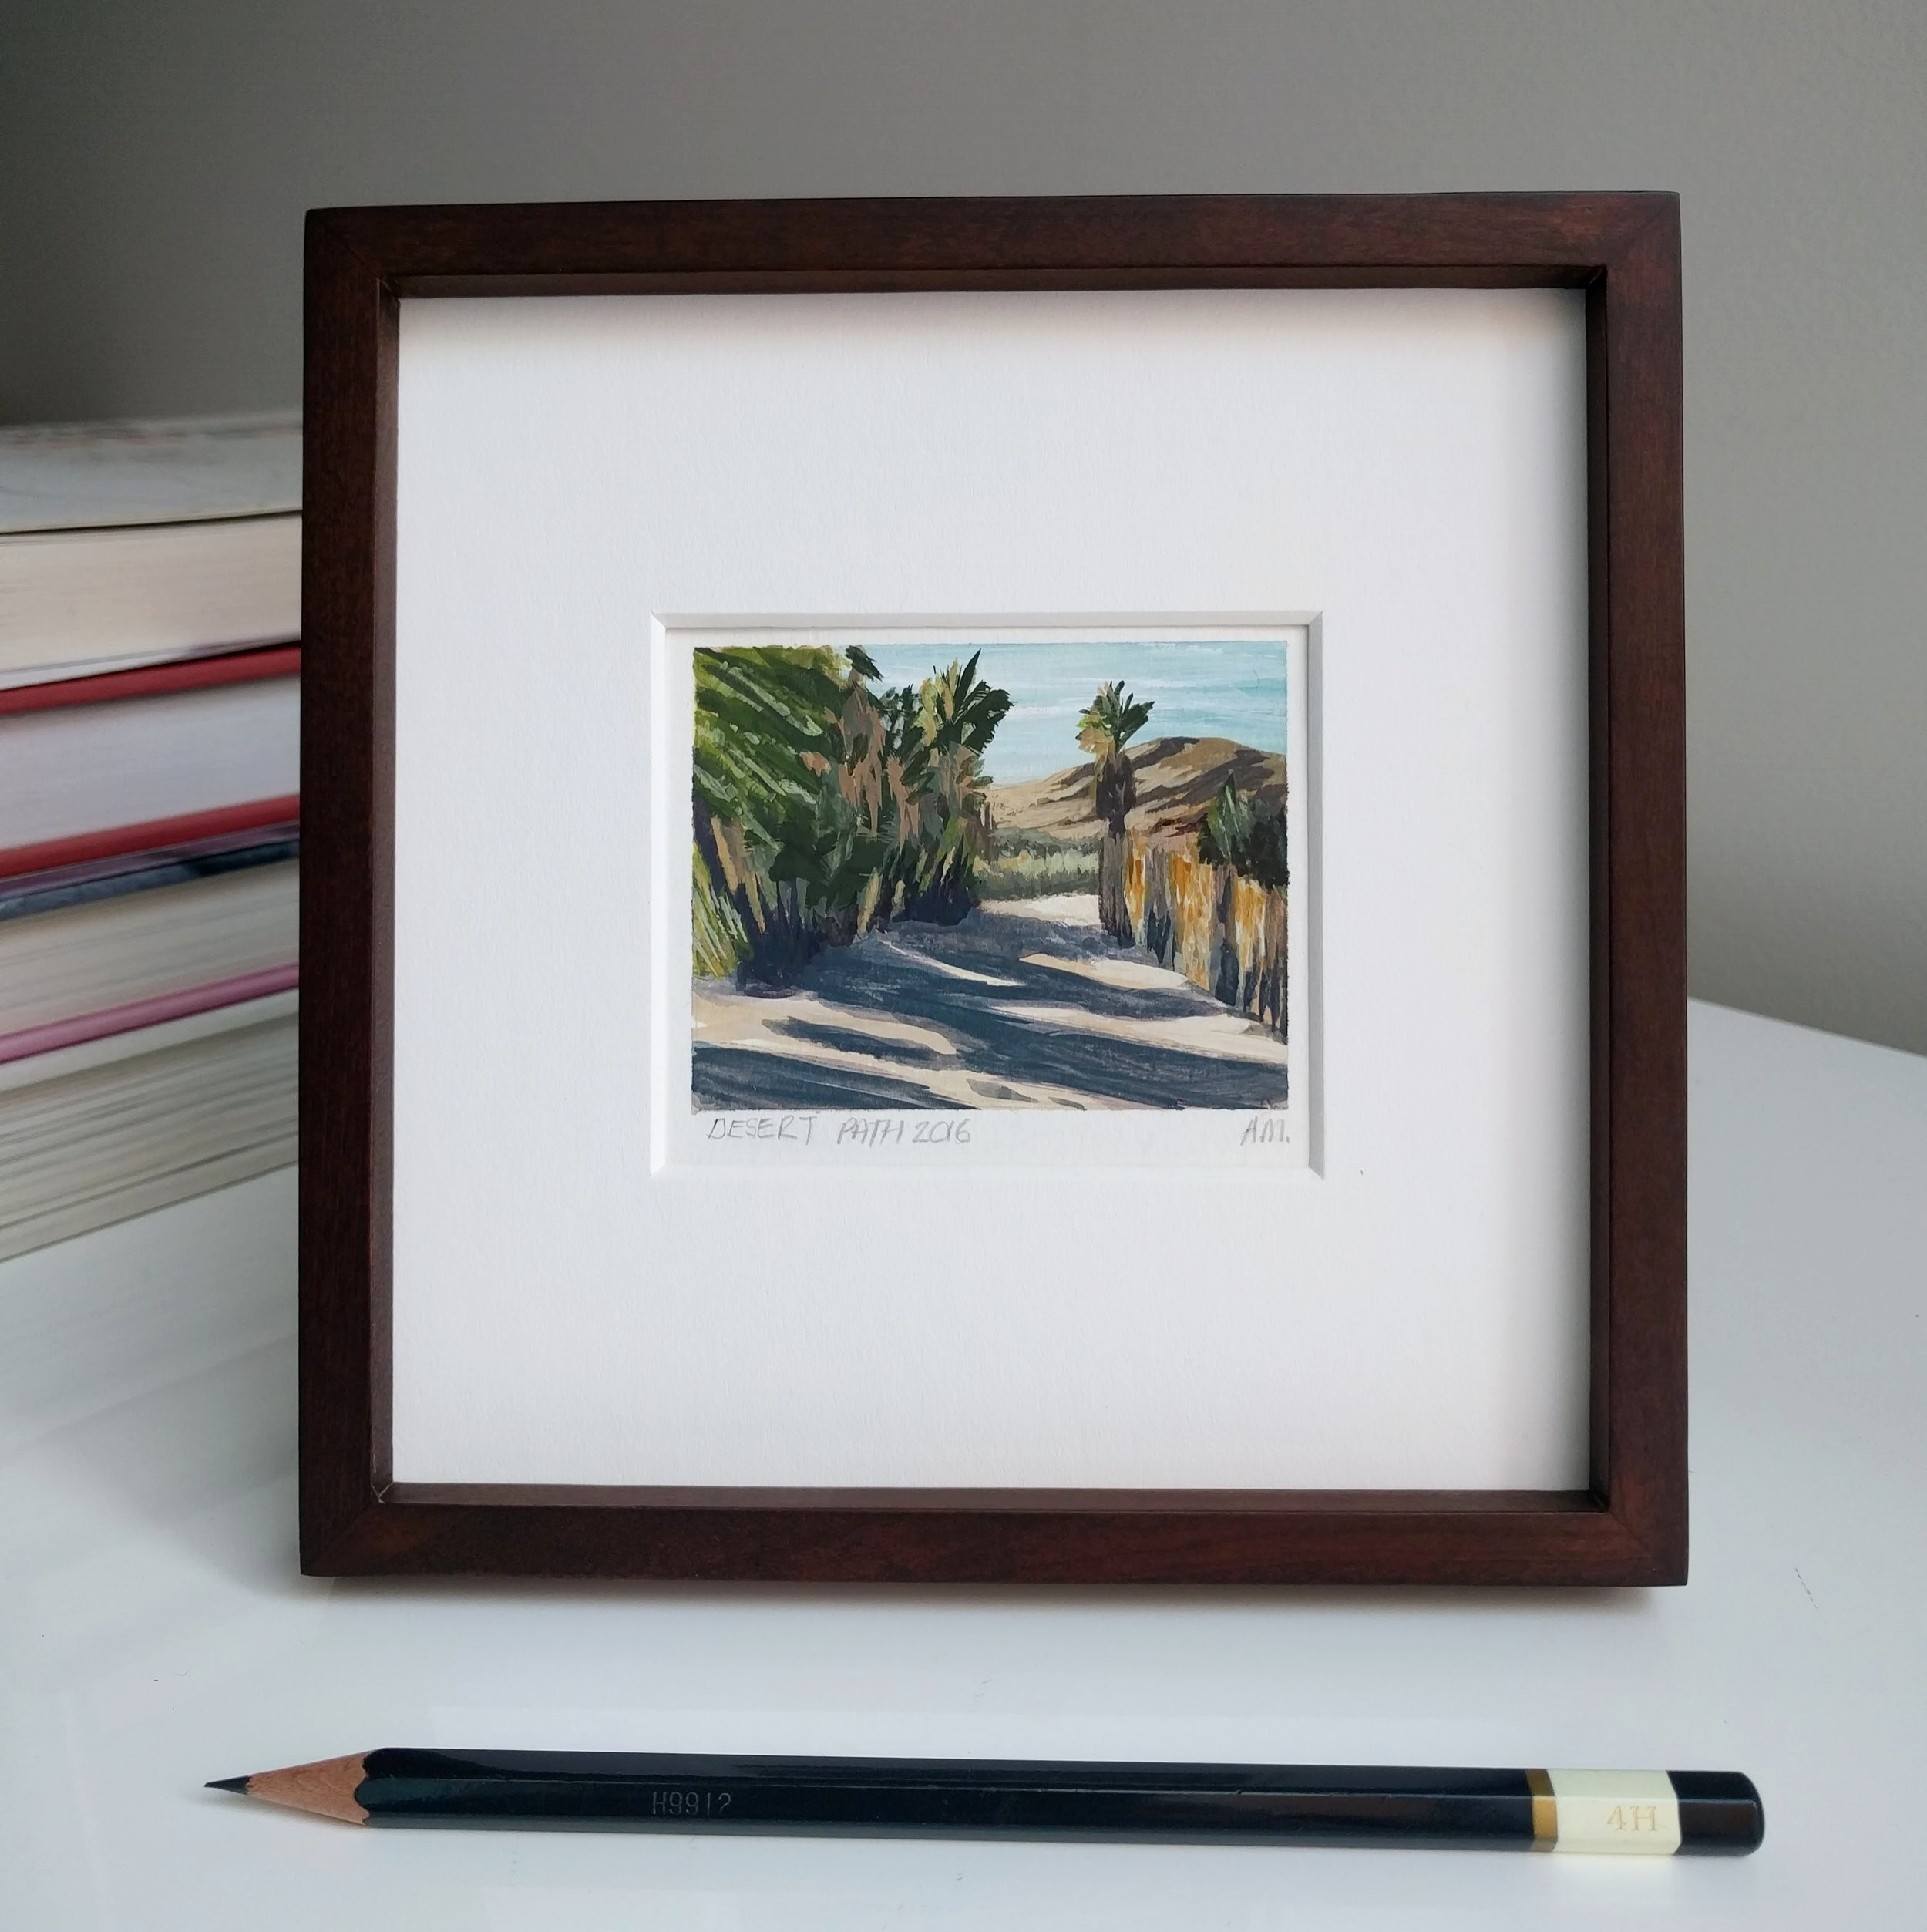 My Small Paintings framed miniature watercolour tiny art of palm tree-lined path at sunset in the California Desert 29 Palms Inn